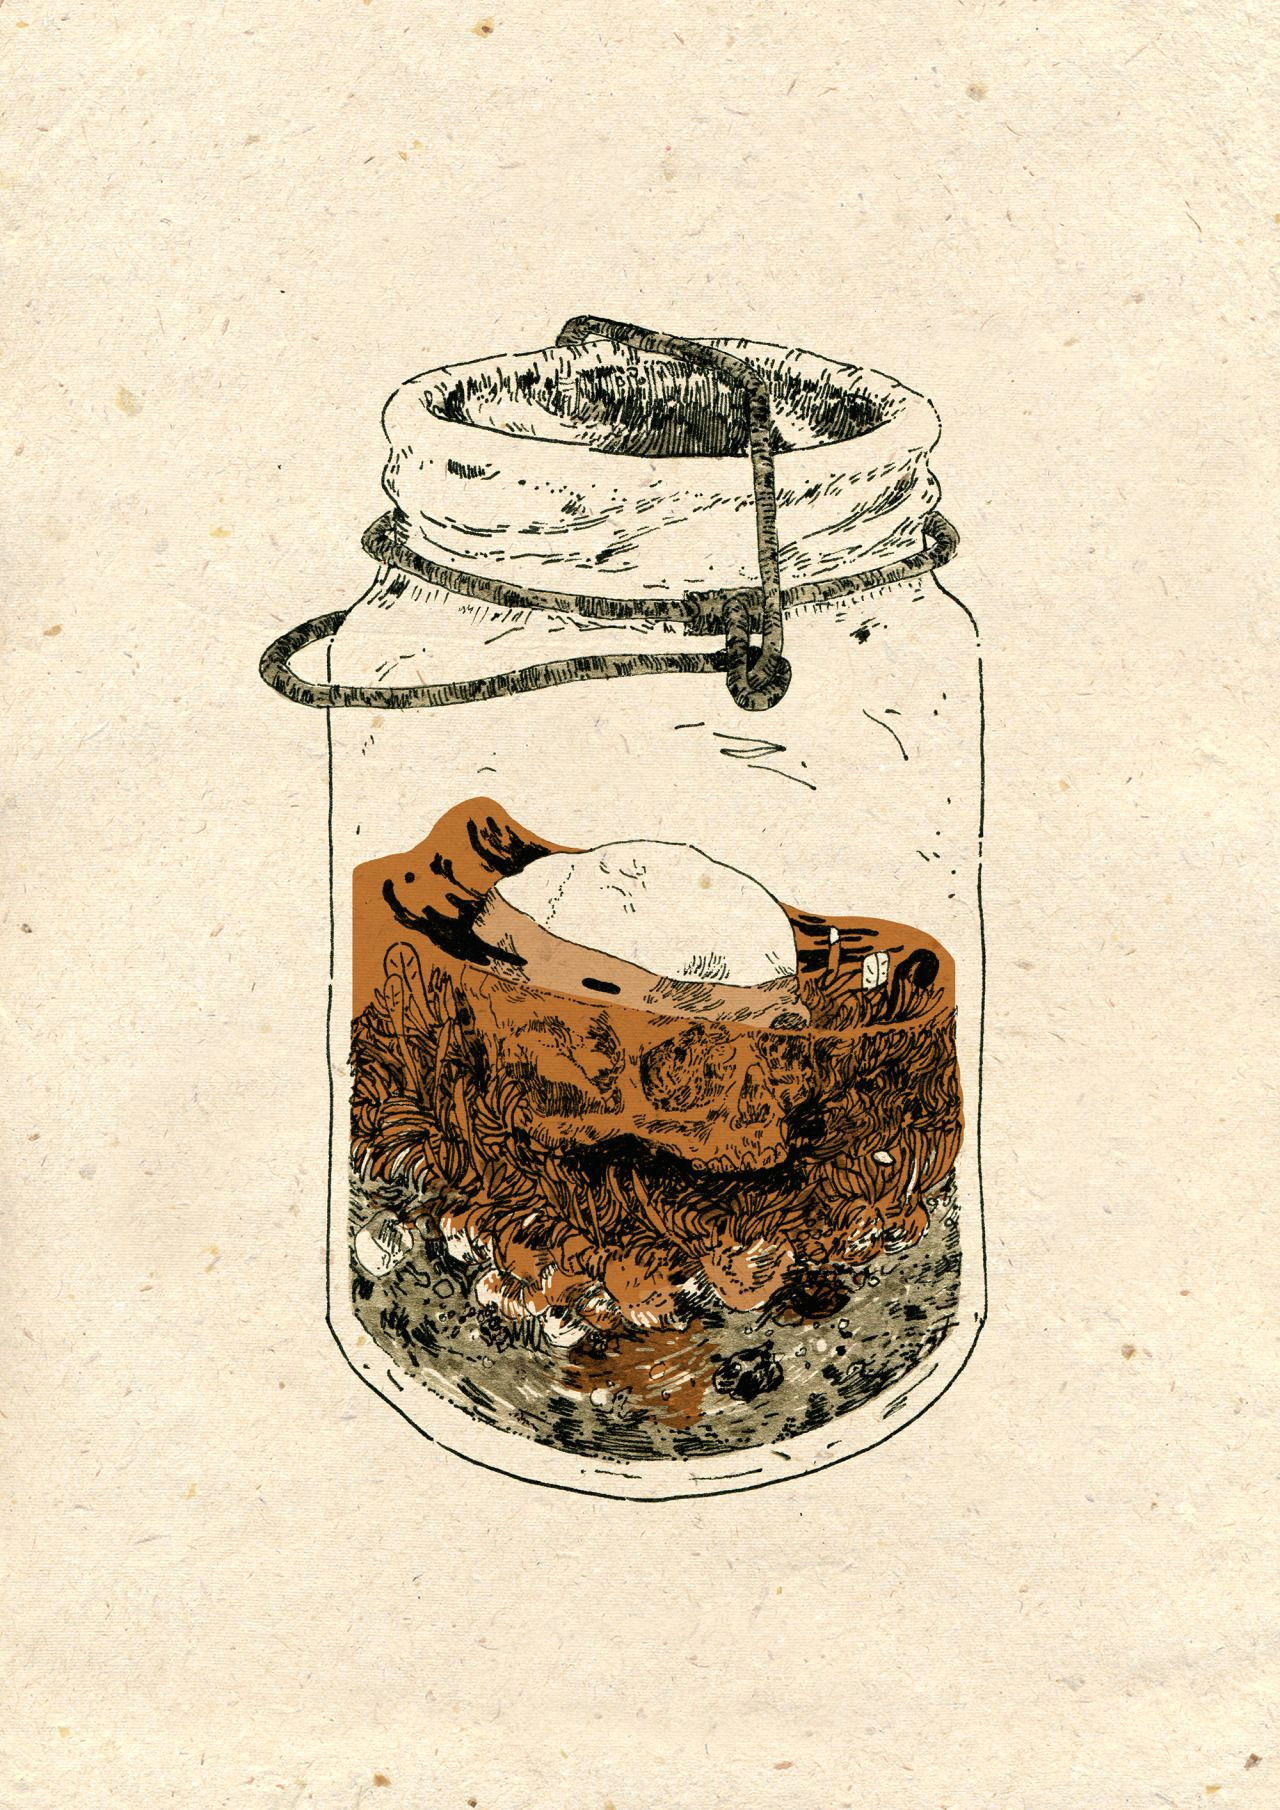 nvm illustration easynip illustration tumblr photo illustration mason jar art amazing drawings